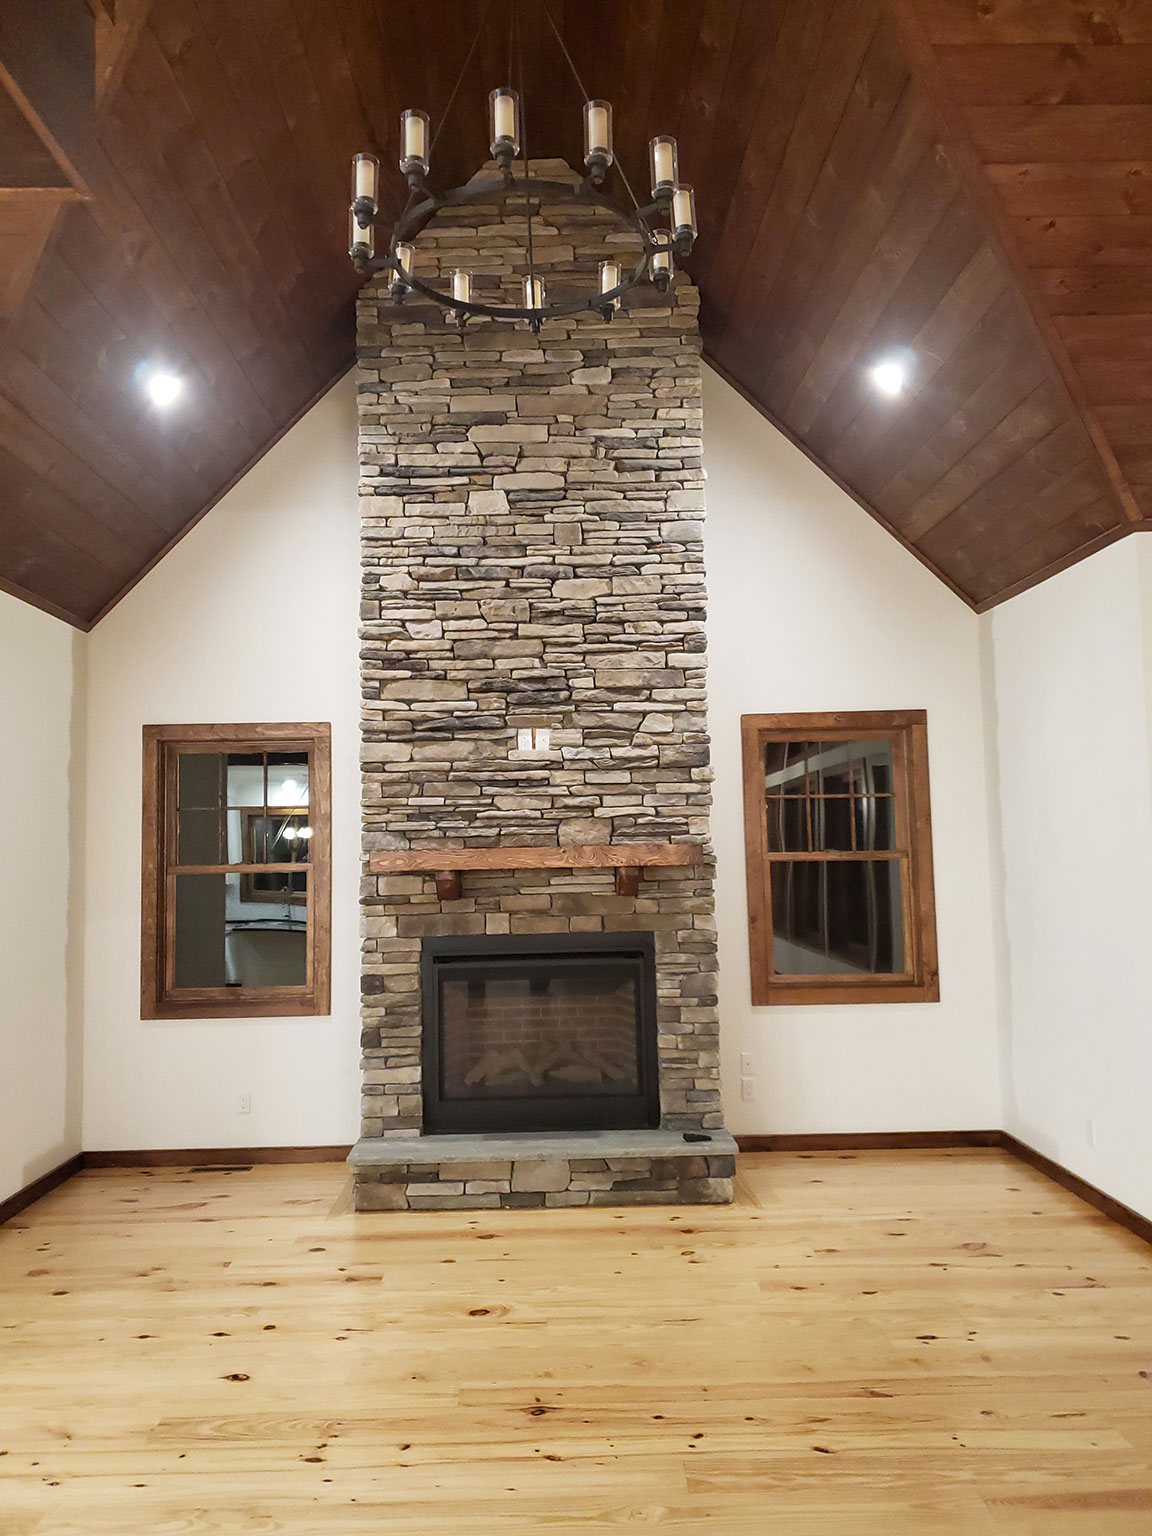 Fireplace on the first floor